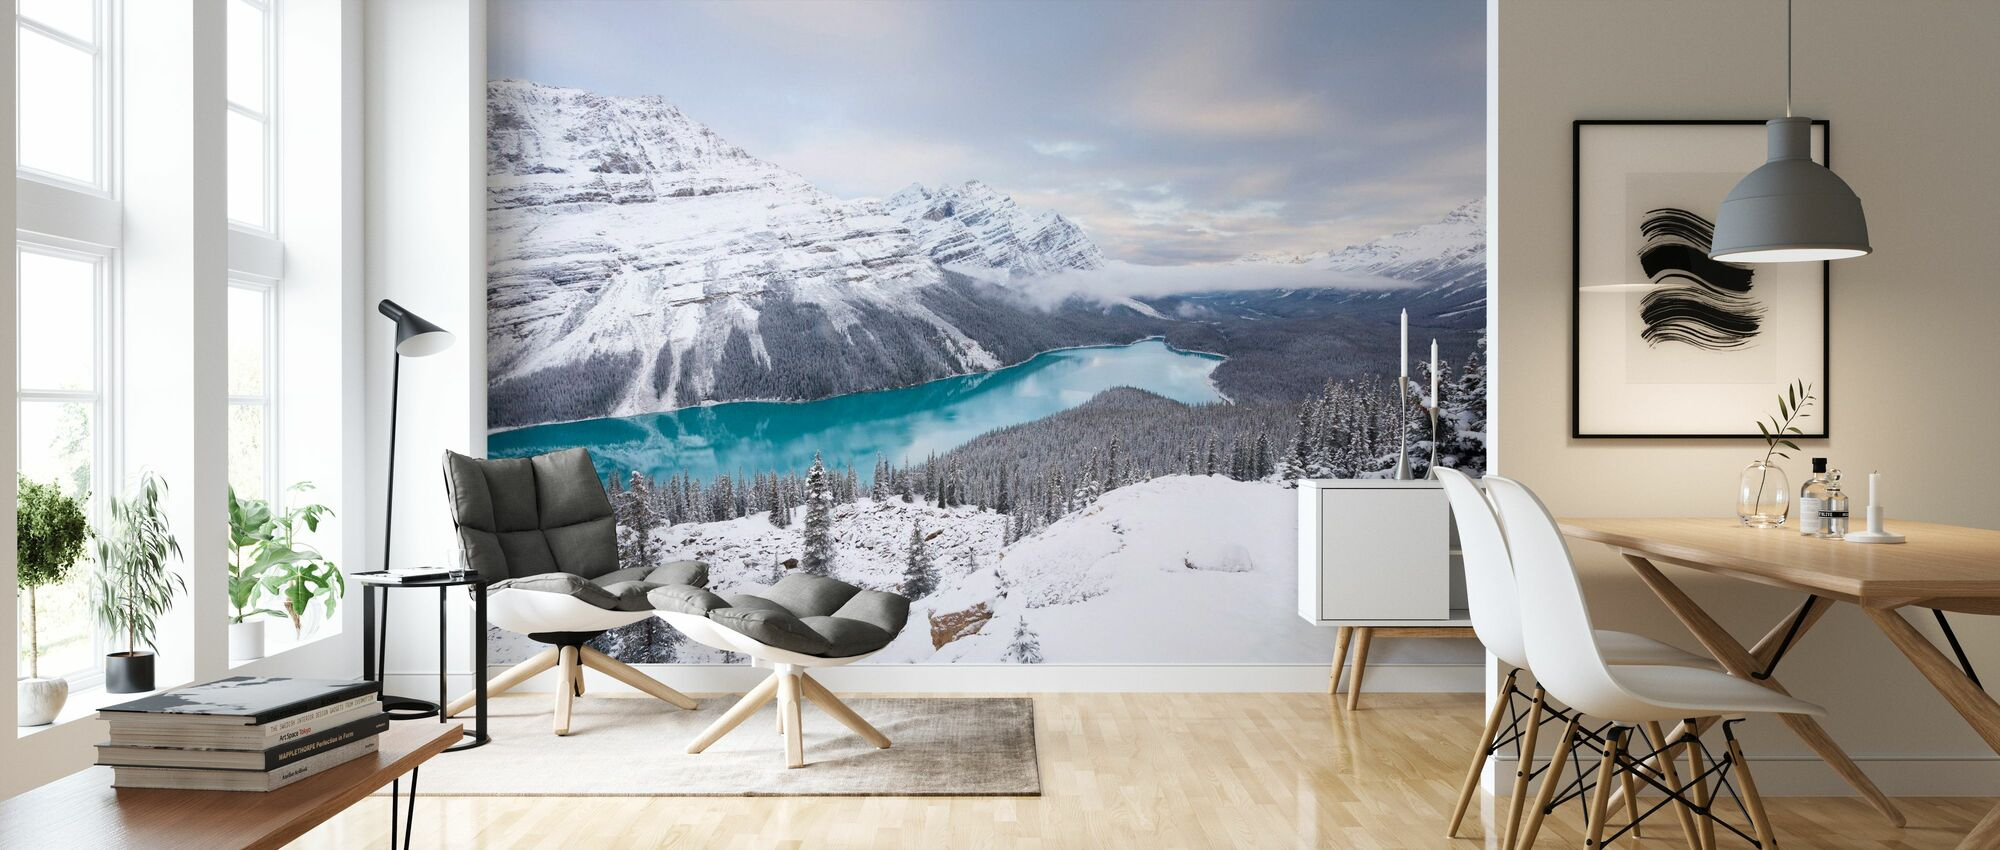 Glacial Lake - Wallpaper - Living Room